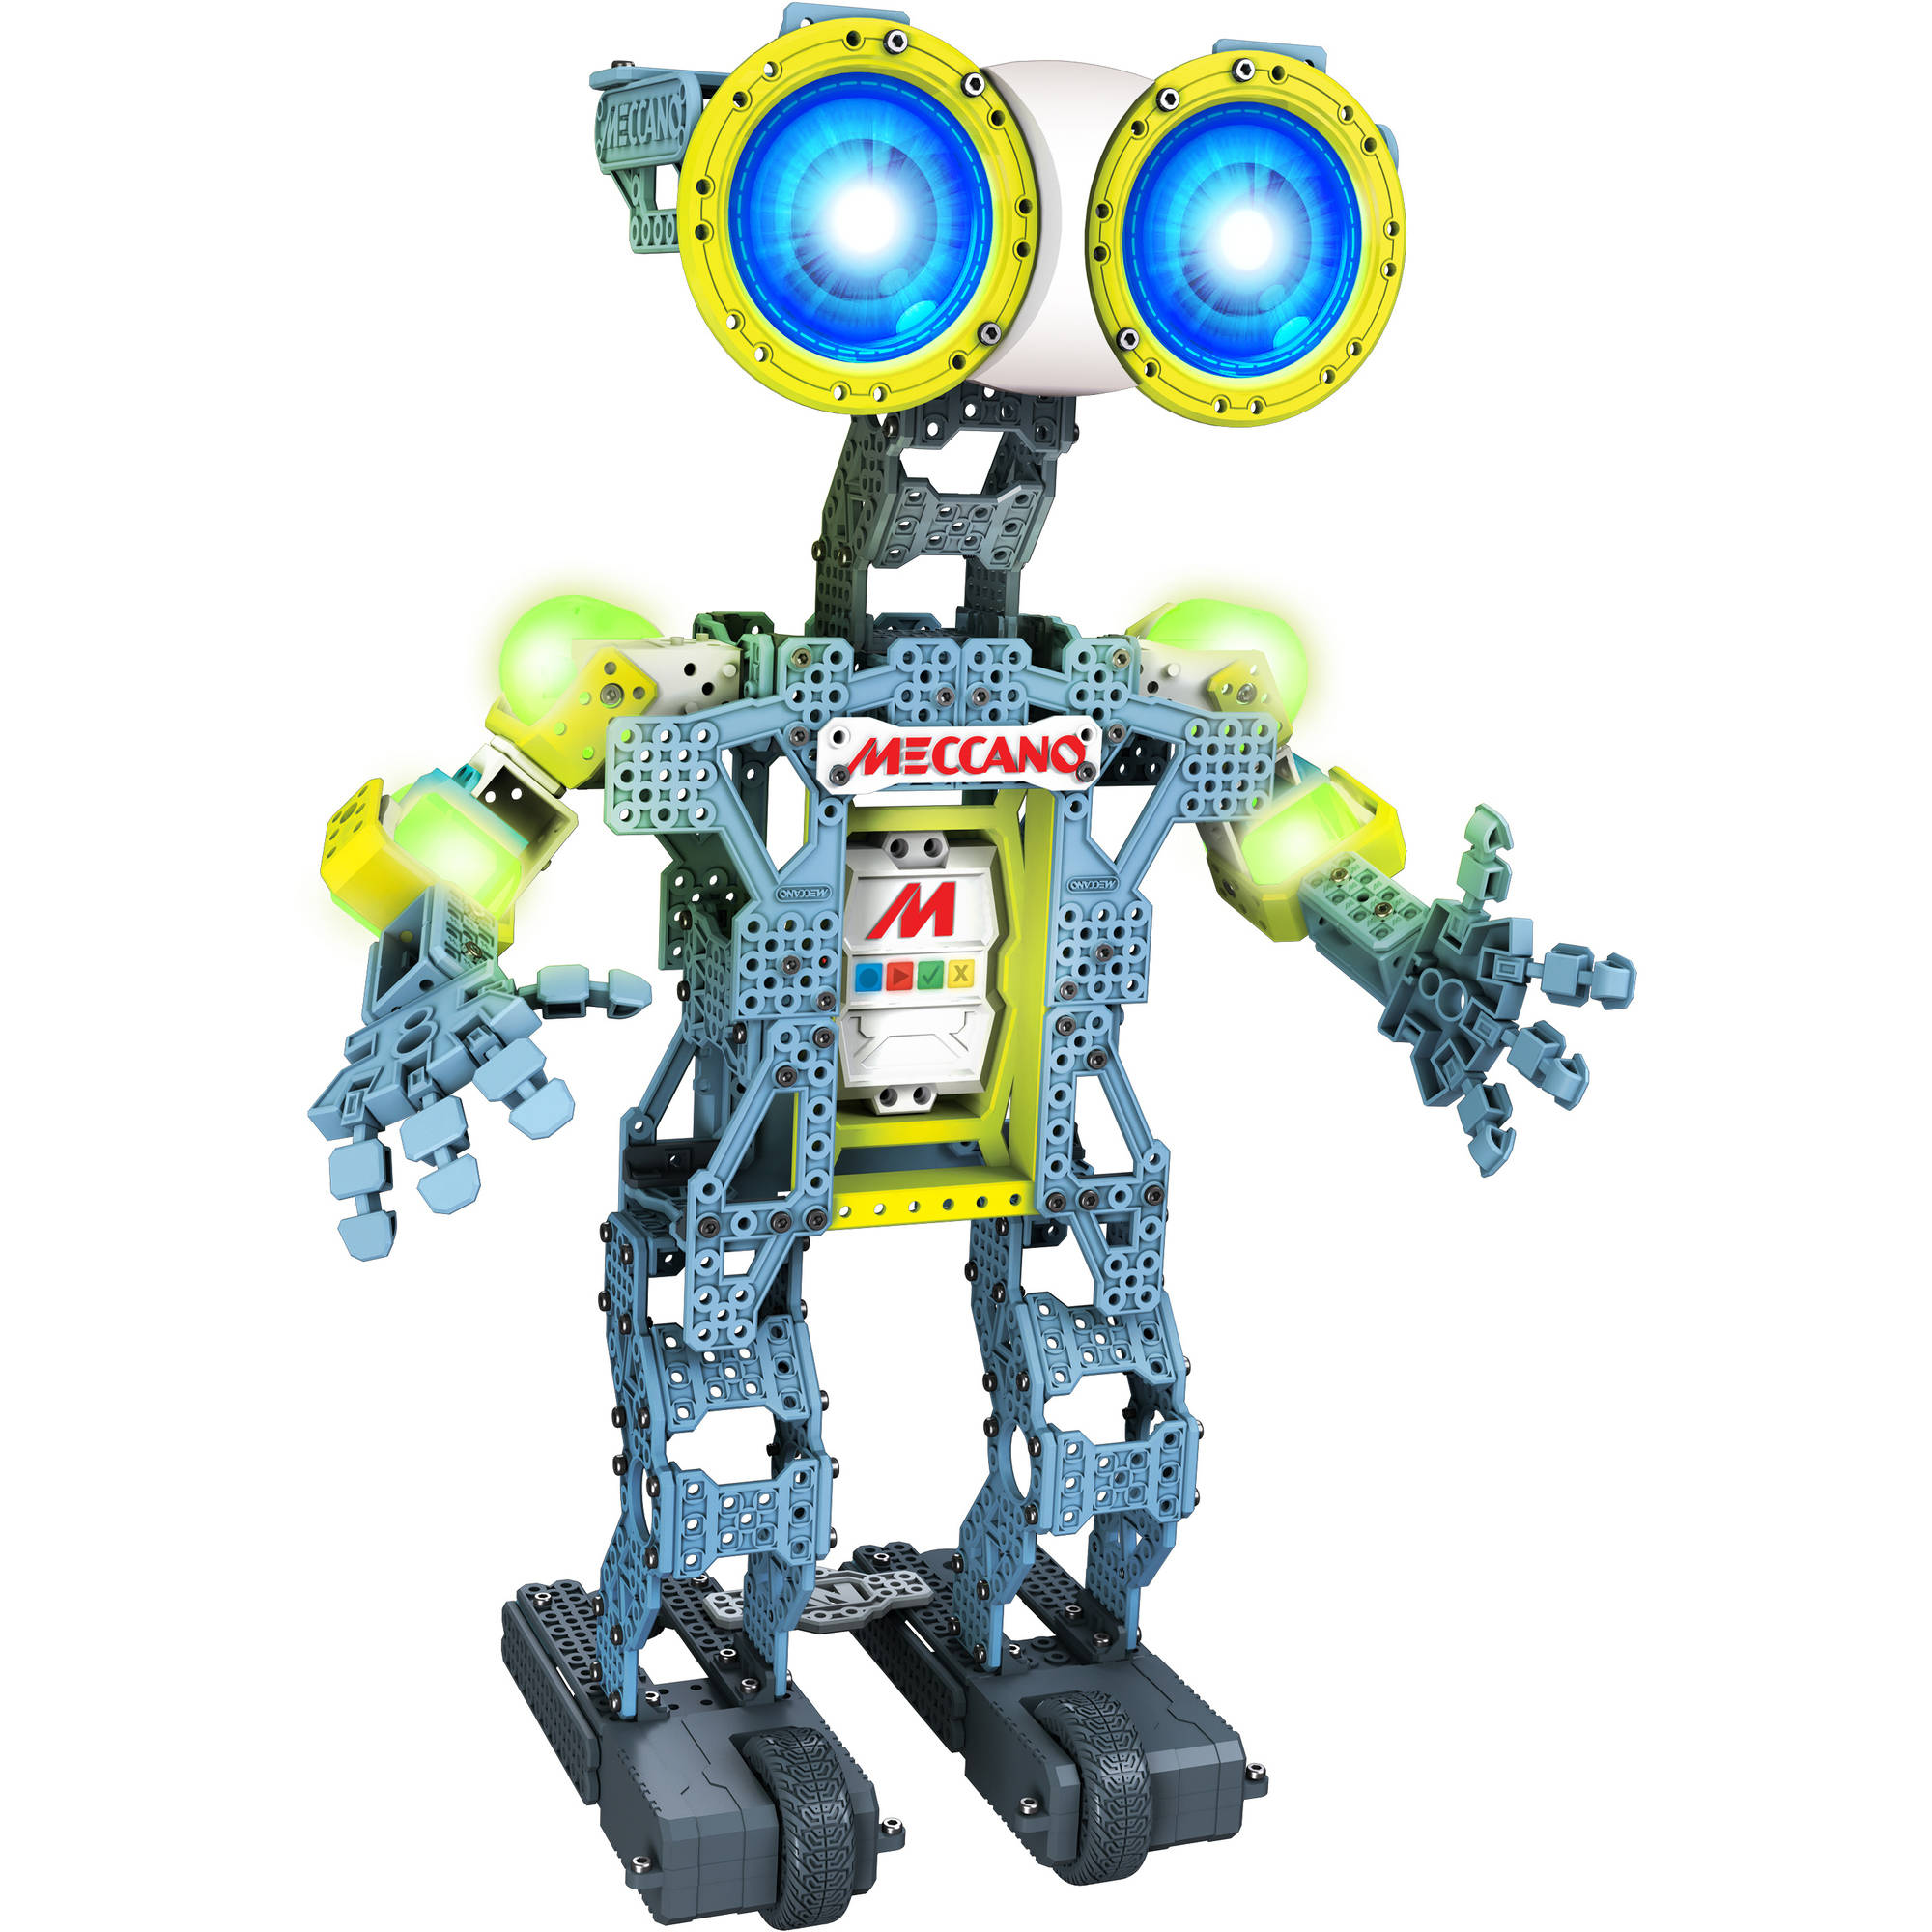 Robots Electronic Pets Toy Fashions Motor Reversing Switches Electronics In Meccano